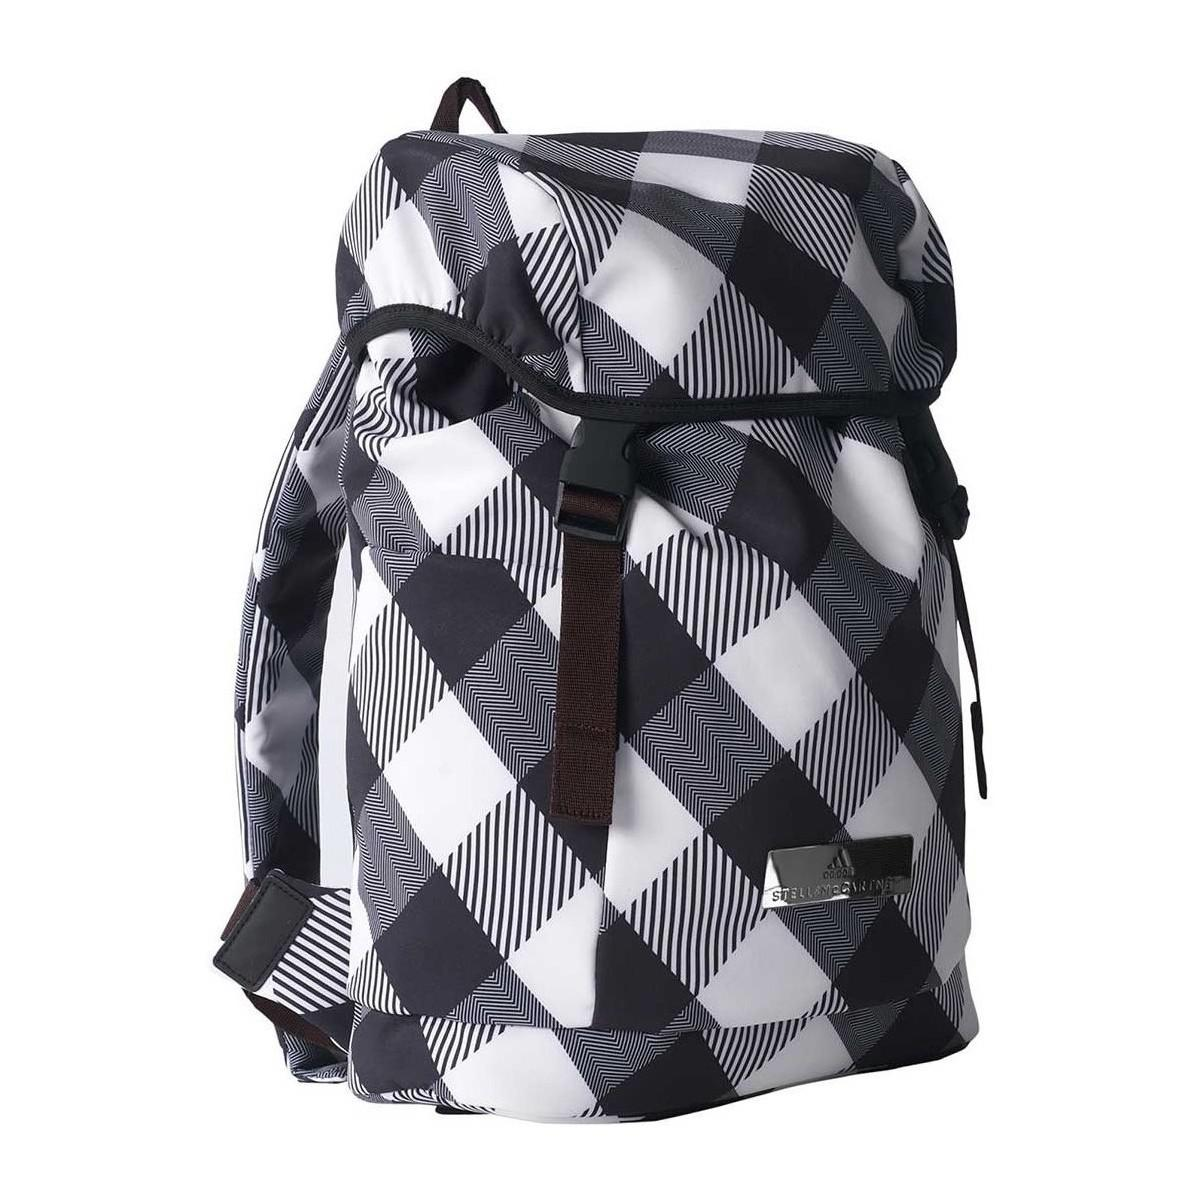 adidas Backpack - Black white Check - One Size Black Women s Sports ... 49c3e47c9f